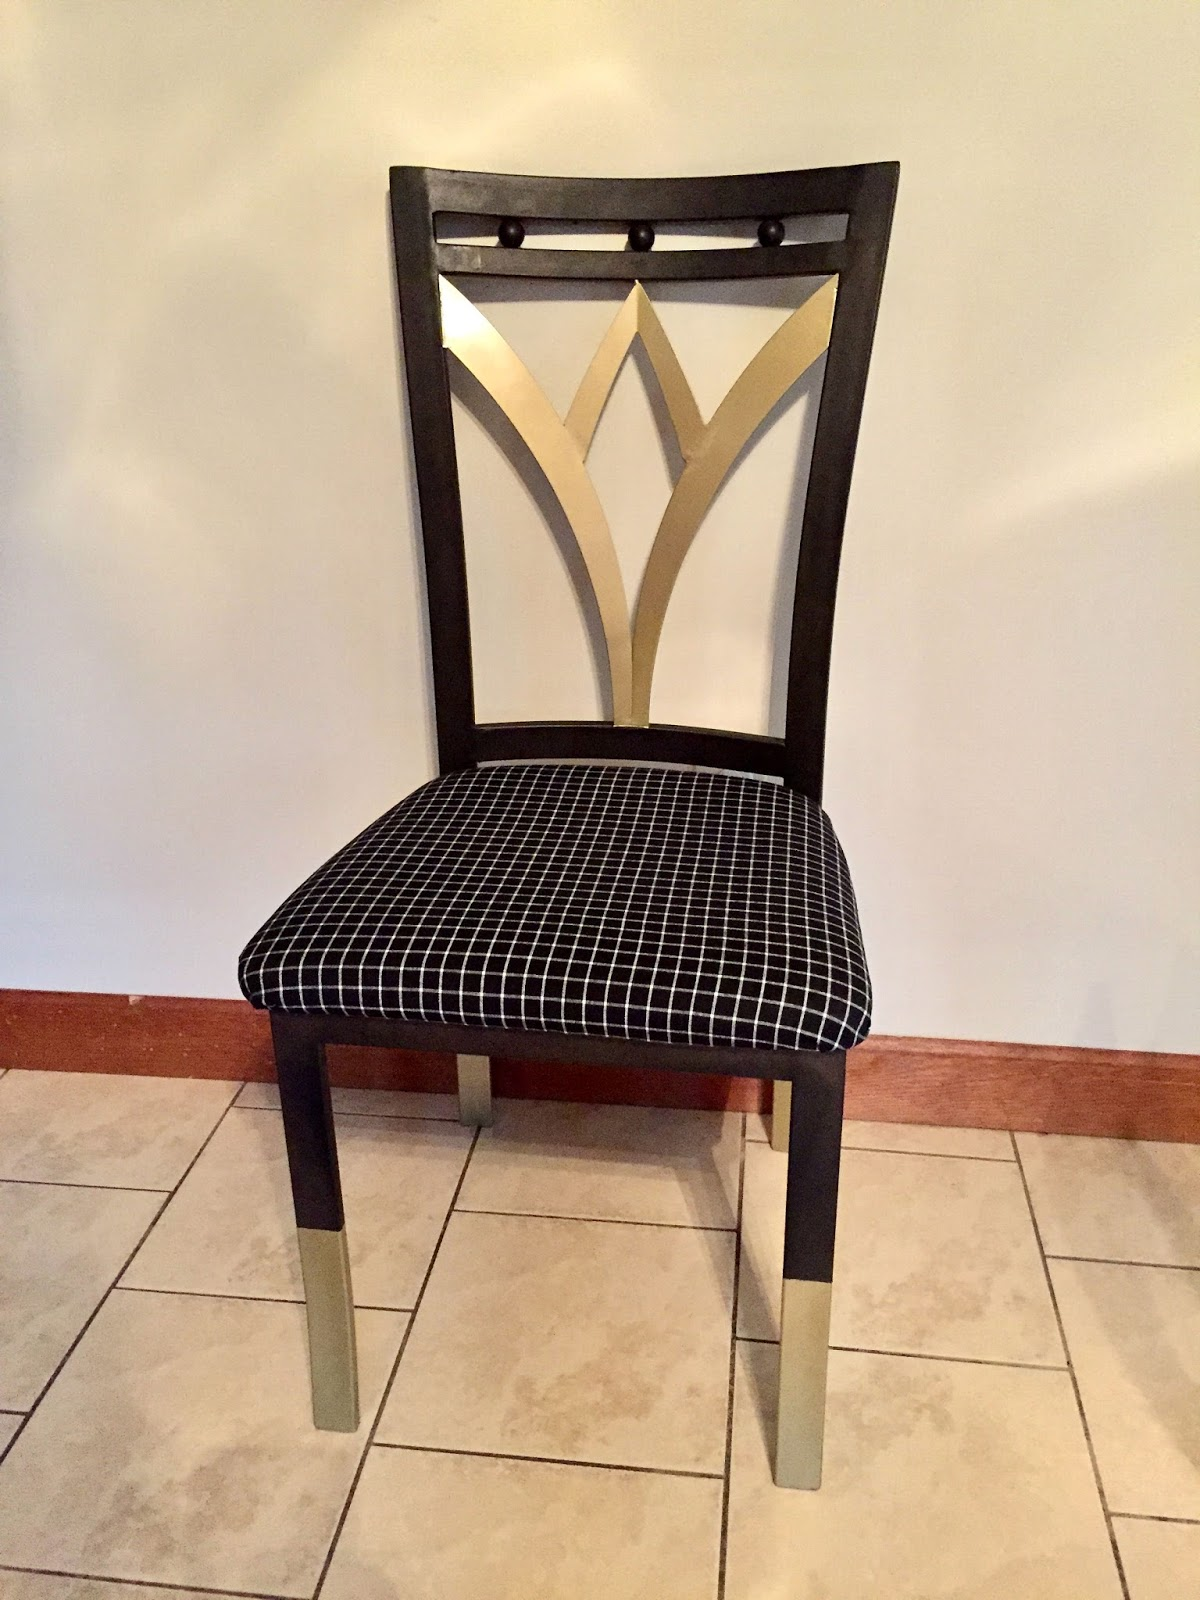 diy dining chairs makeover revolving chair rajkot beauty101bylisa project